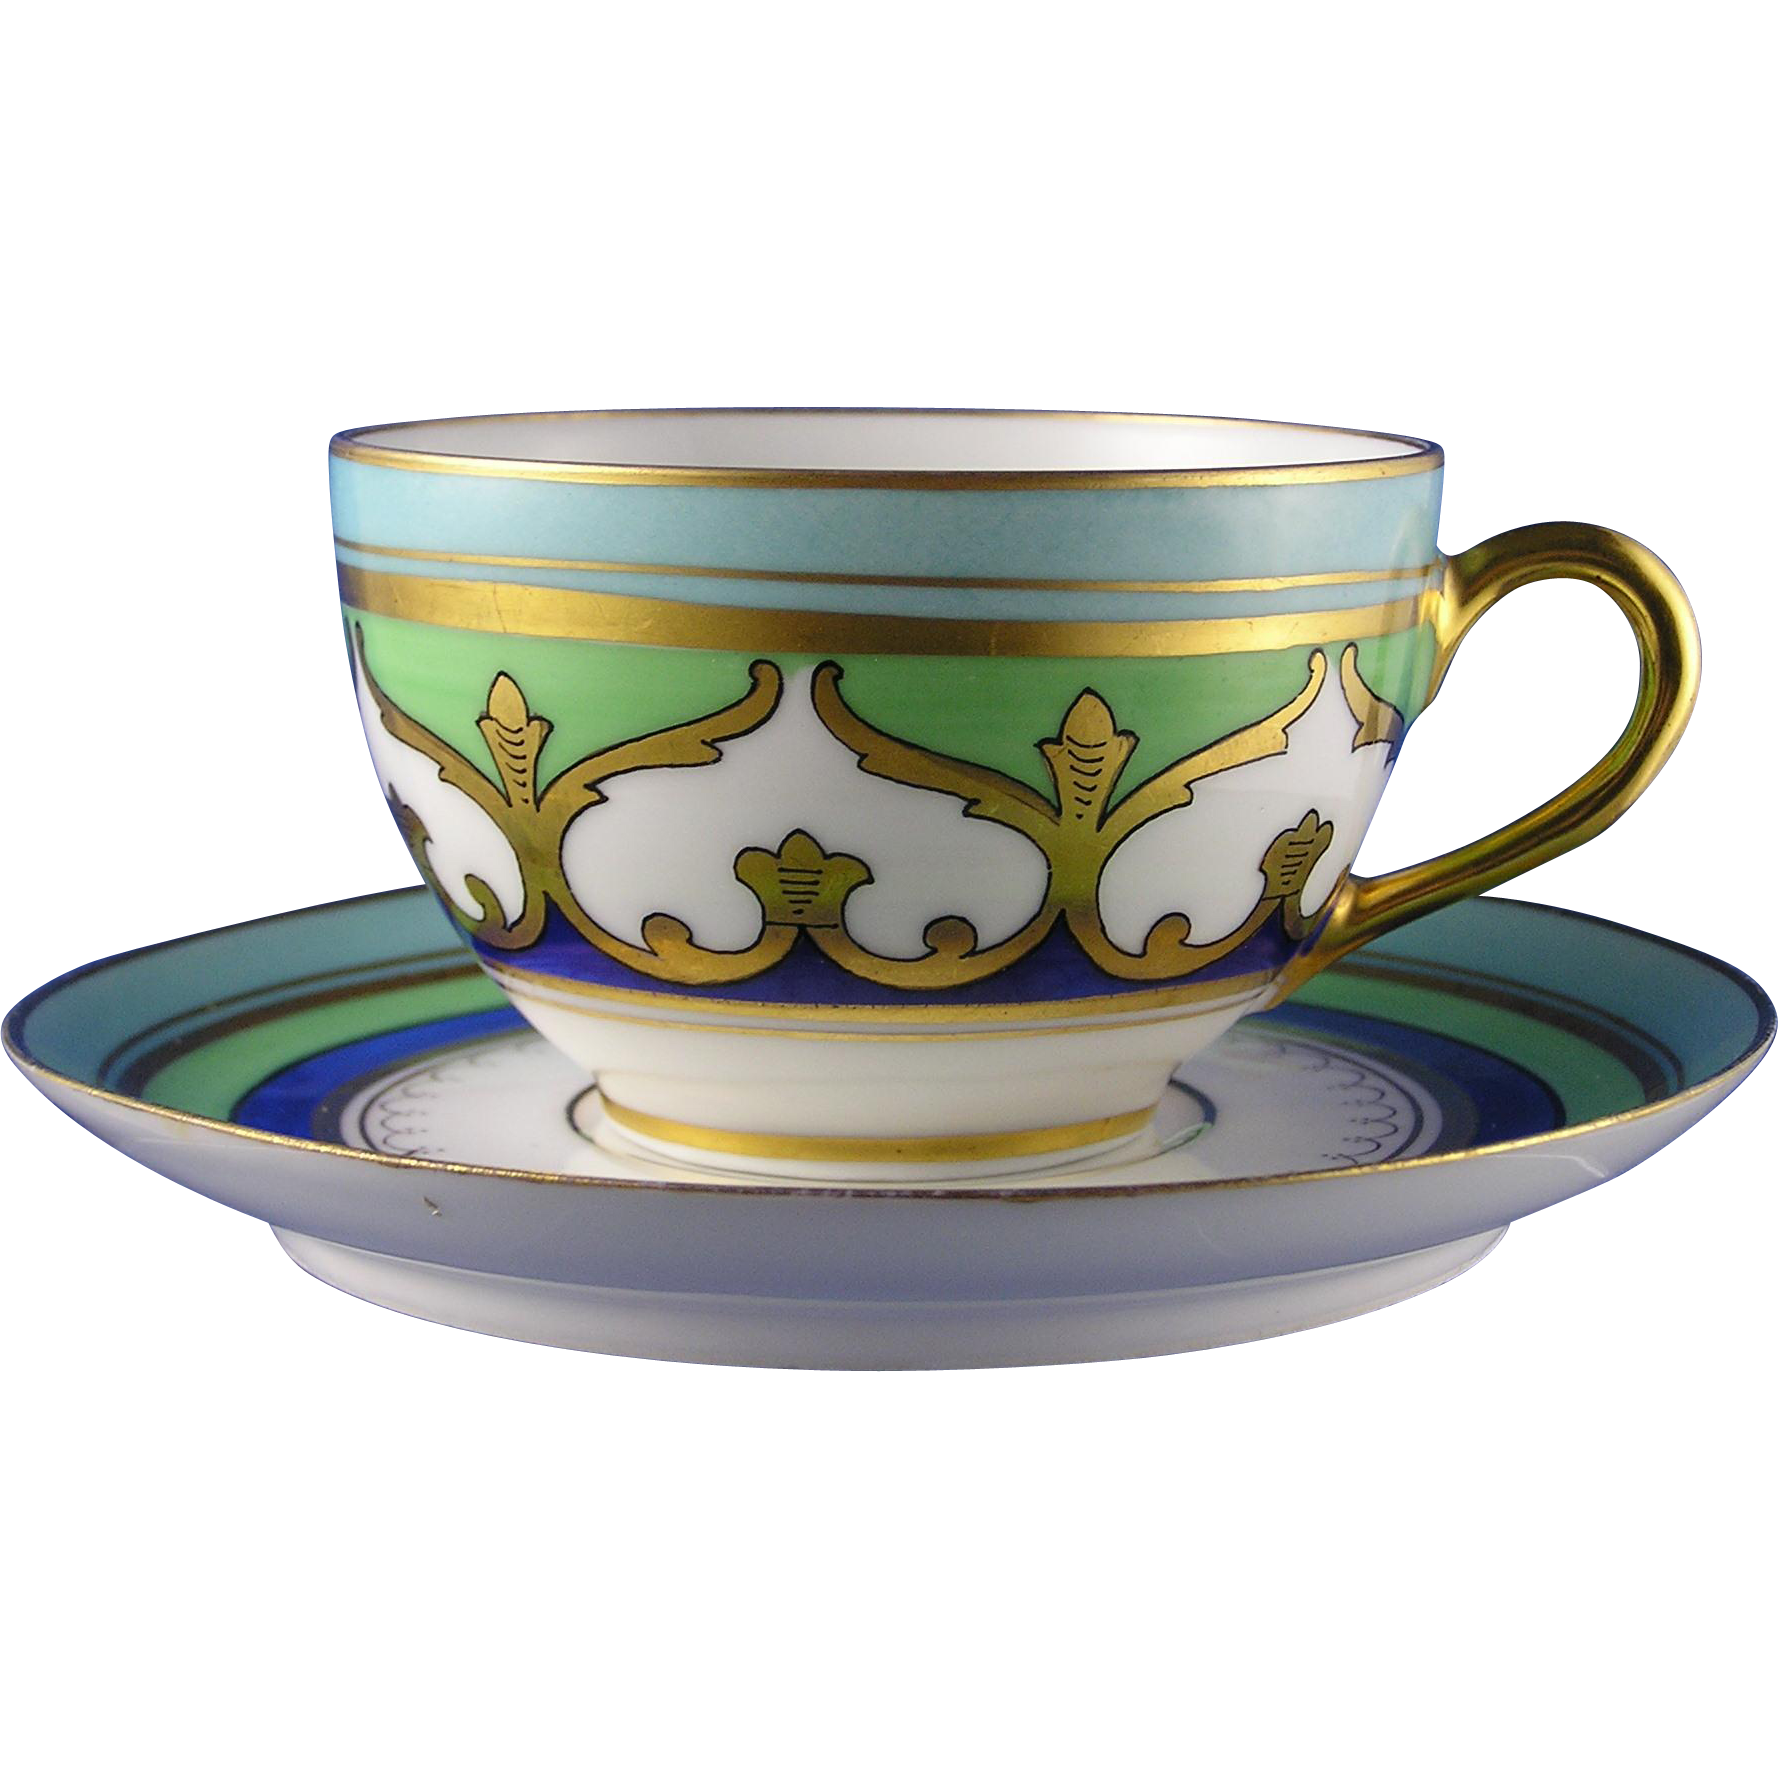 Limoges Mark 6 Stouffer Studios Arabesque Motif Cup & Saucer Set (c.1906-1914)